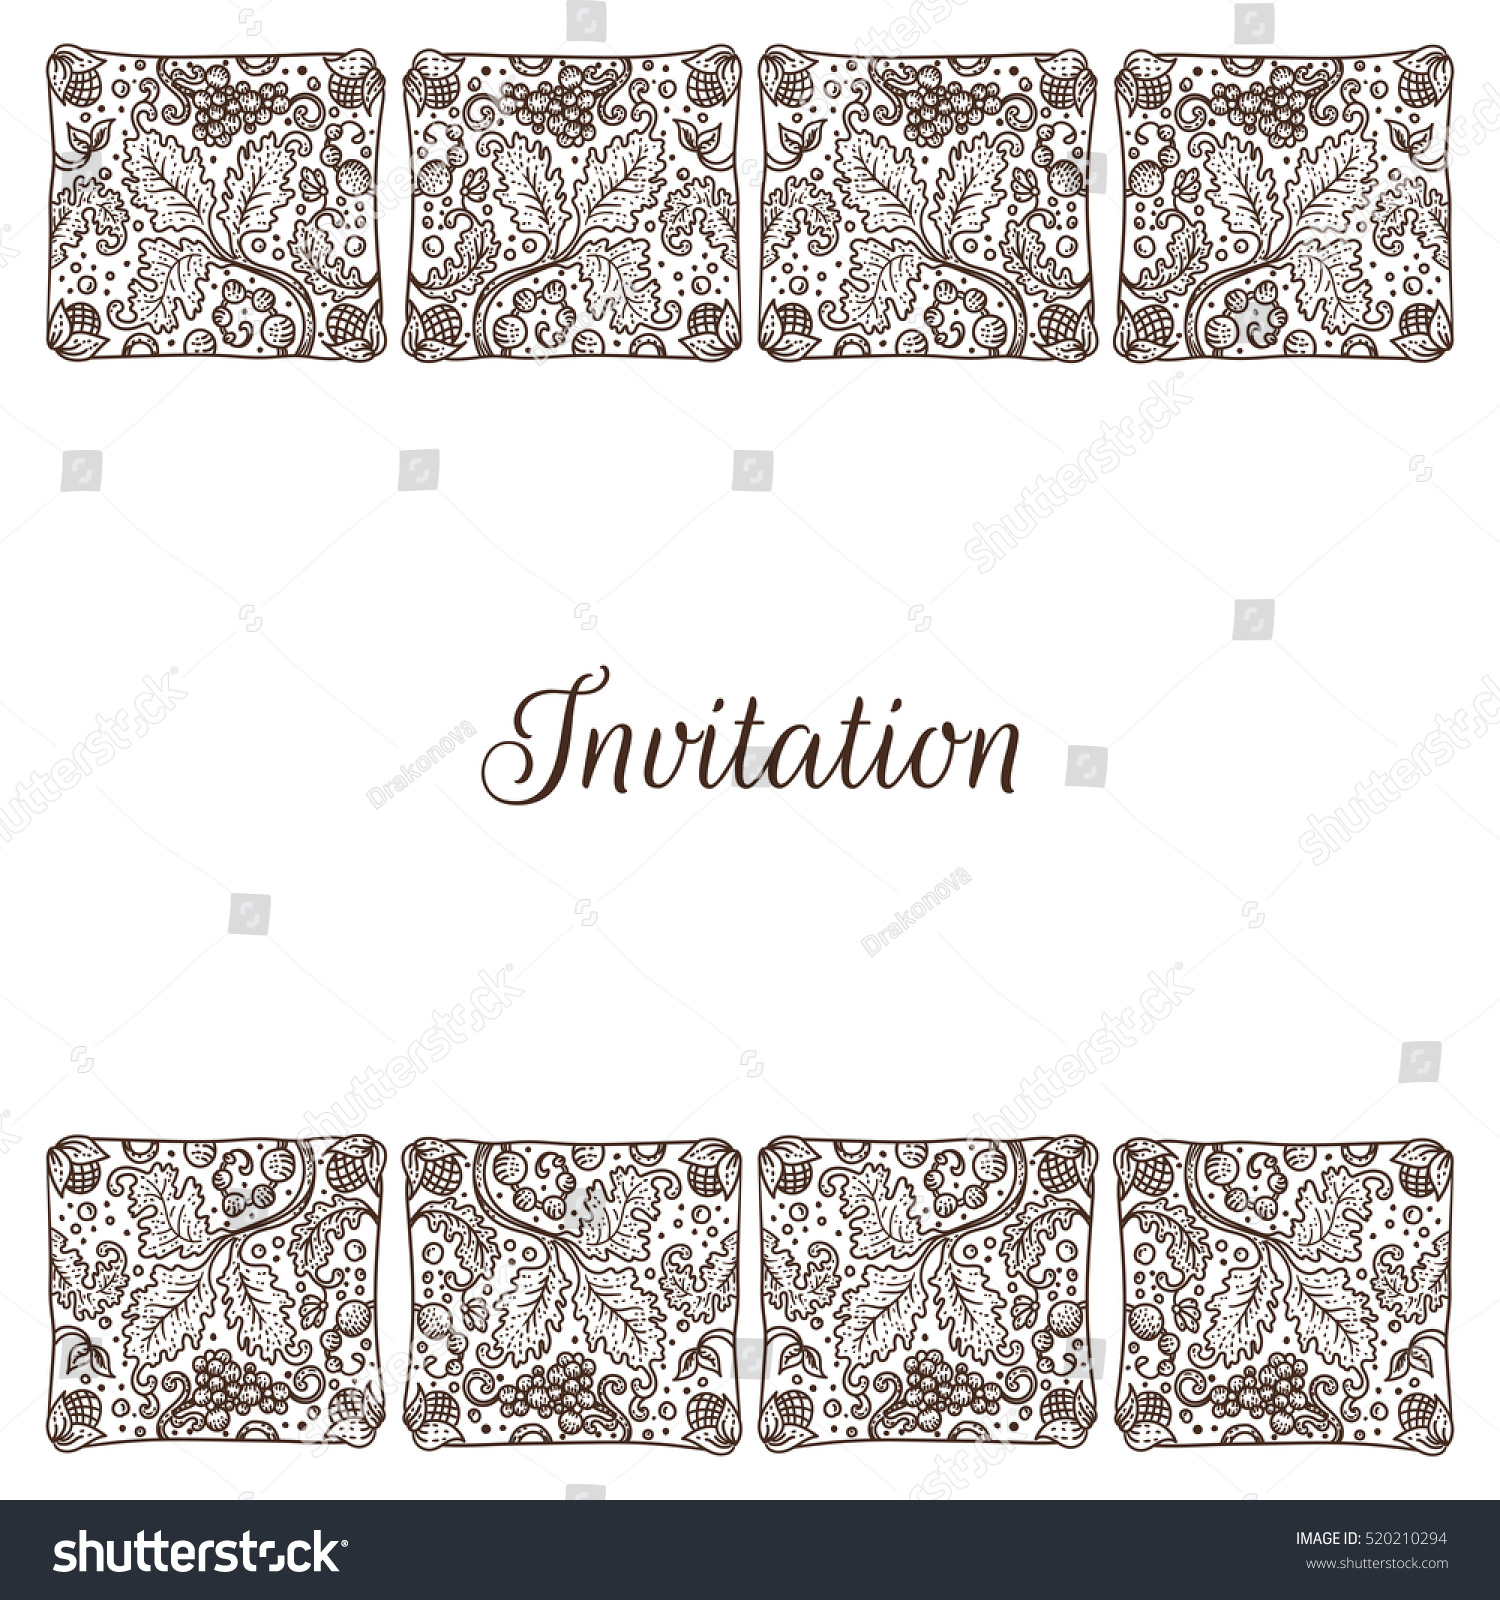 Invitation lyrics ailee images invitation sample and invitation design invitation lyrics ailee image collections invitation sample and invitation lyrics ailee image collections invitation sample and stopboris Gallery